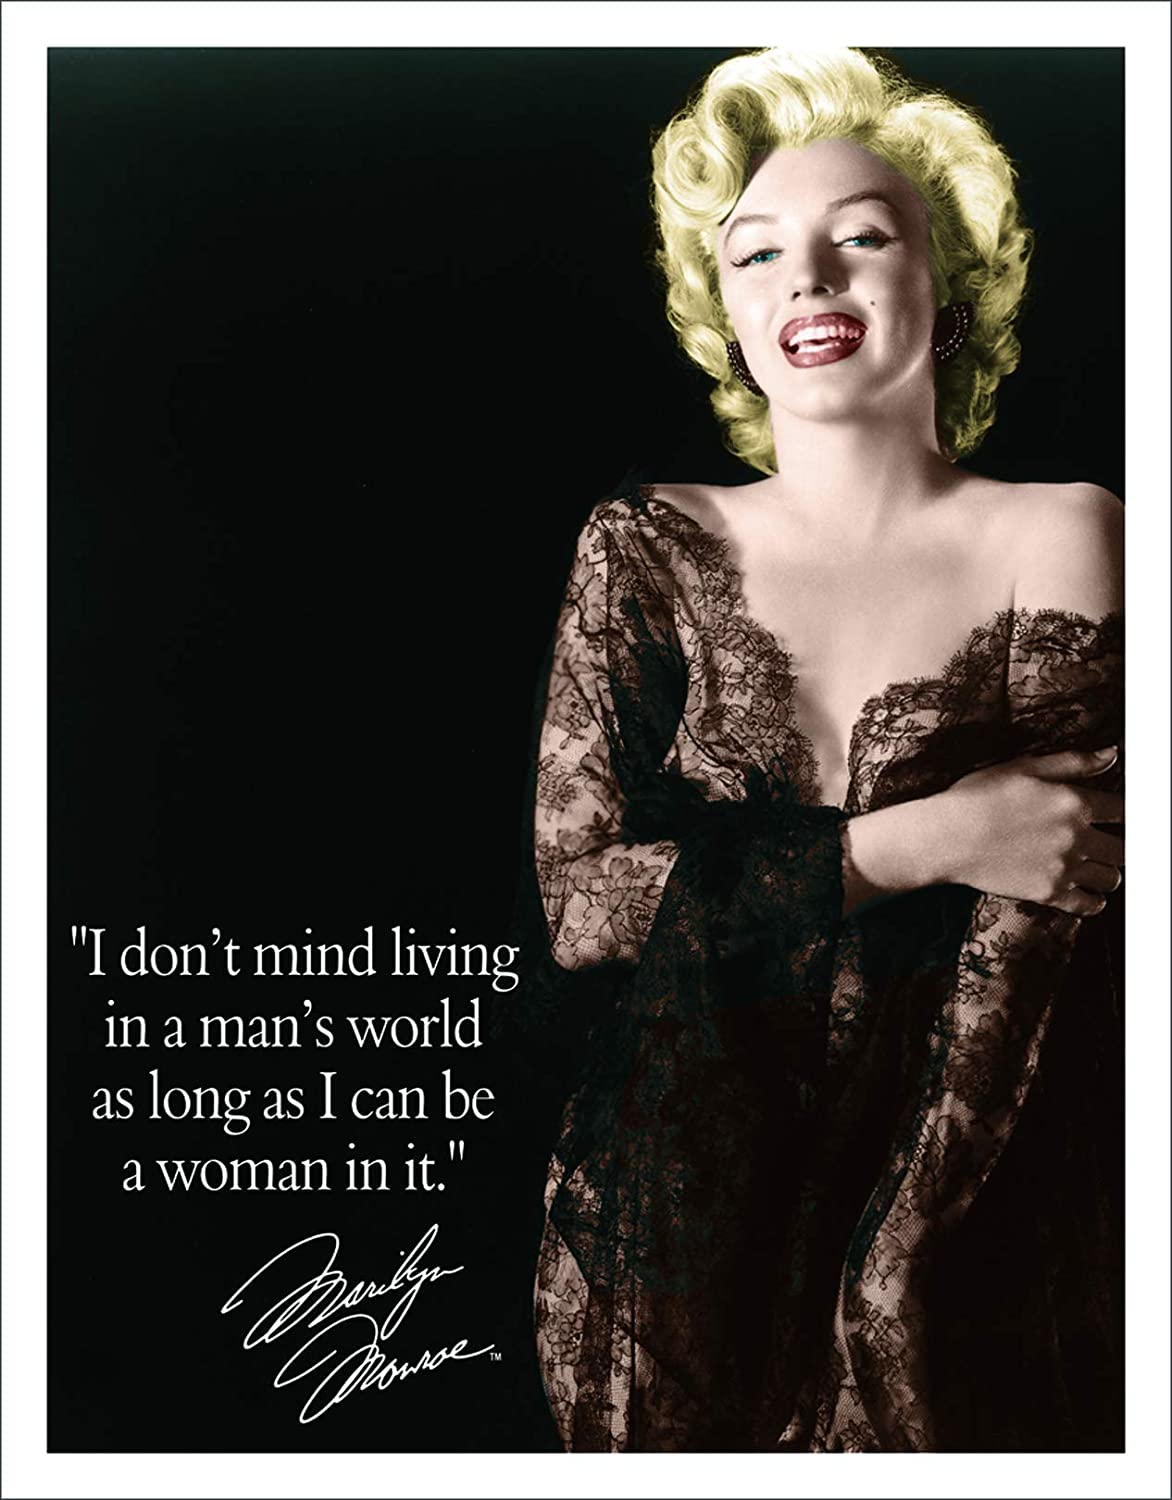 Marylin Monroe quote black and white decorative metal sign tin wall door plaque